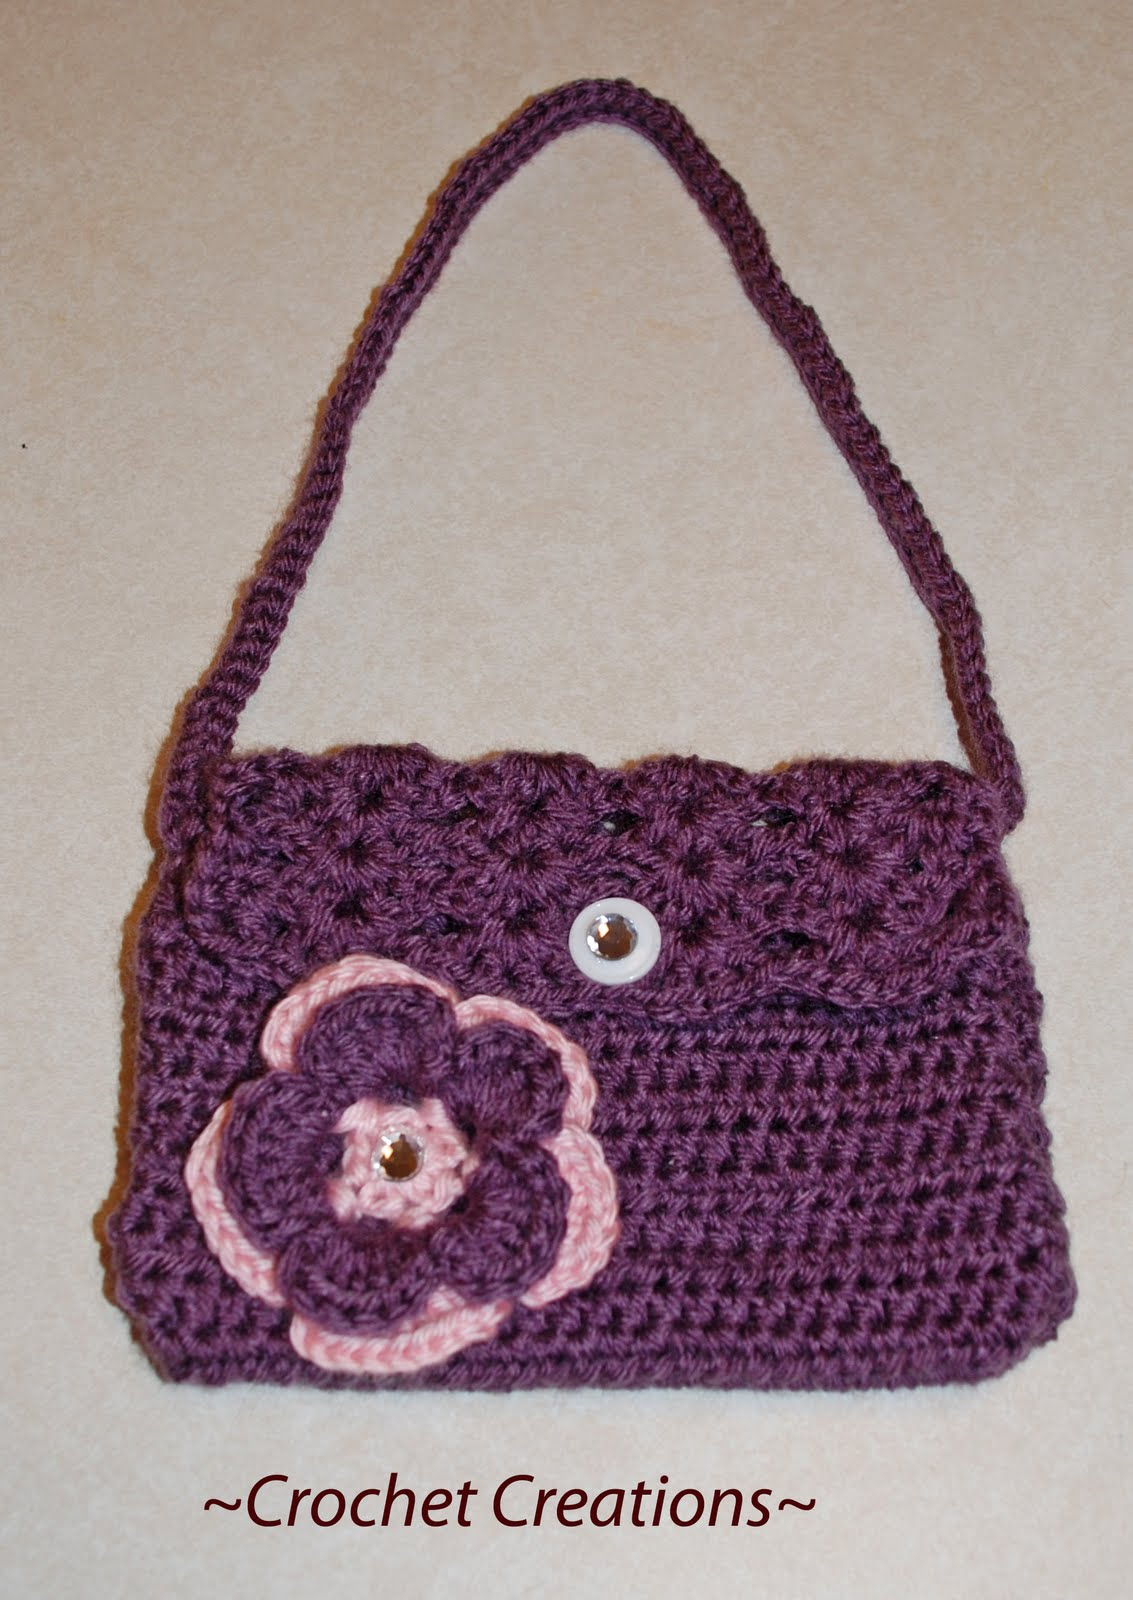 Crochet Or Knit Pattern For A Child Purse Crochet Club